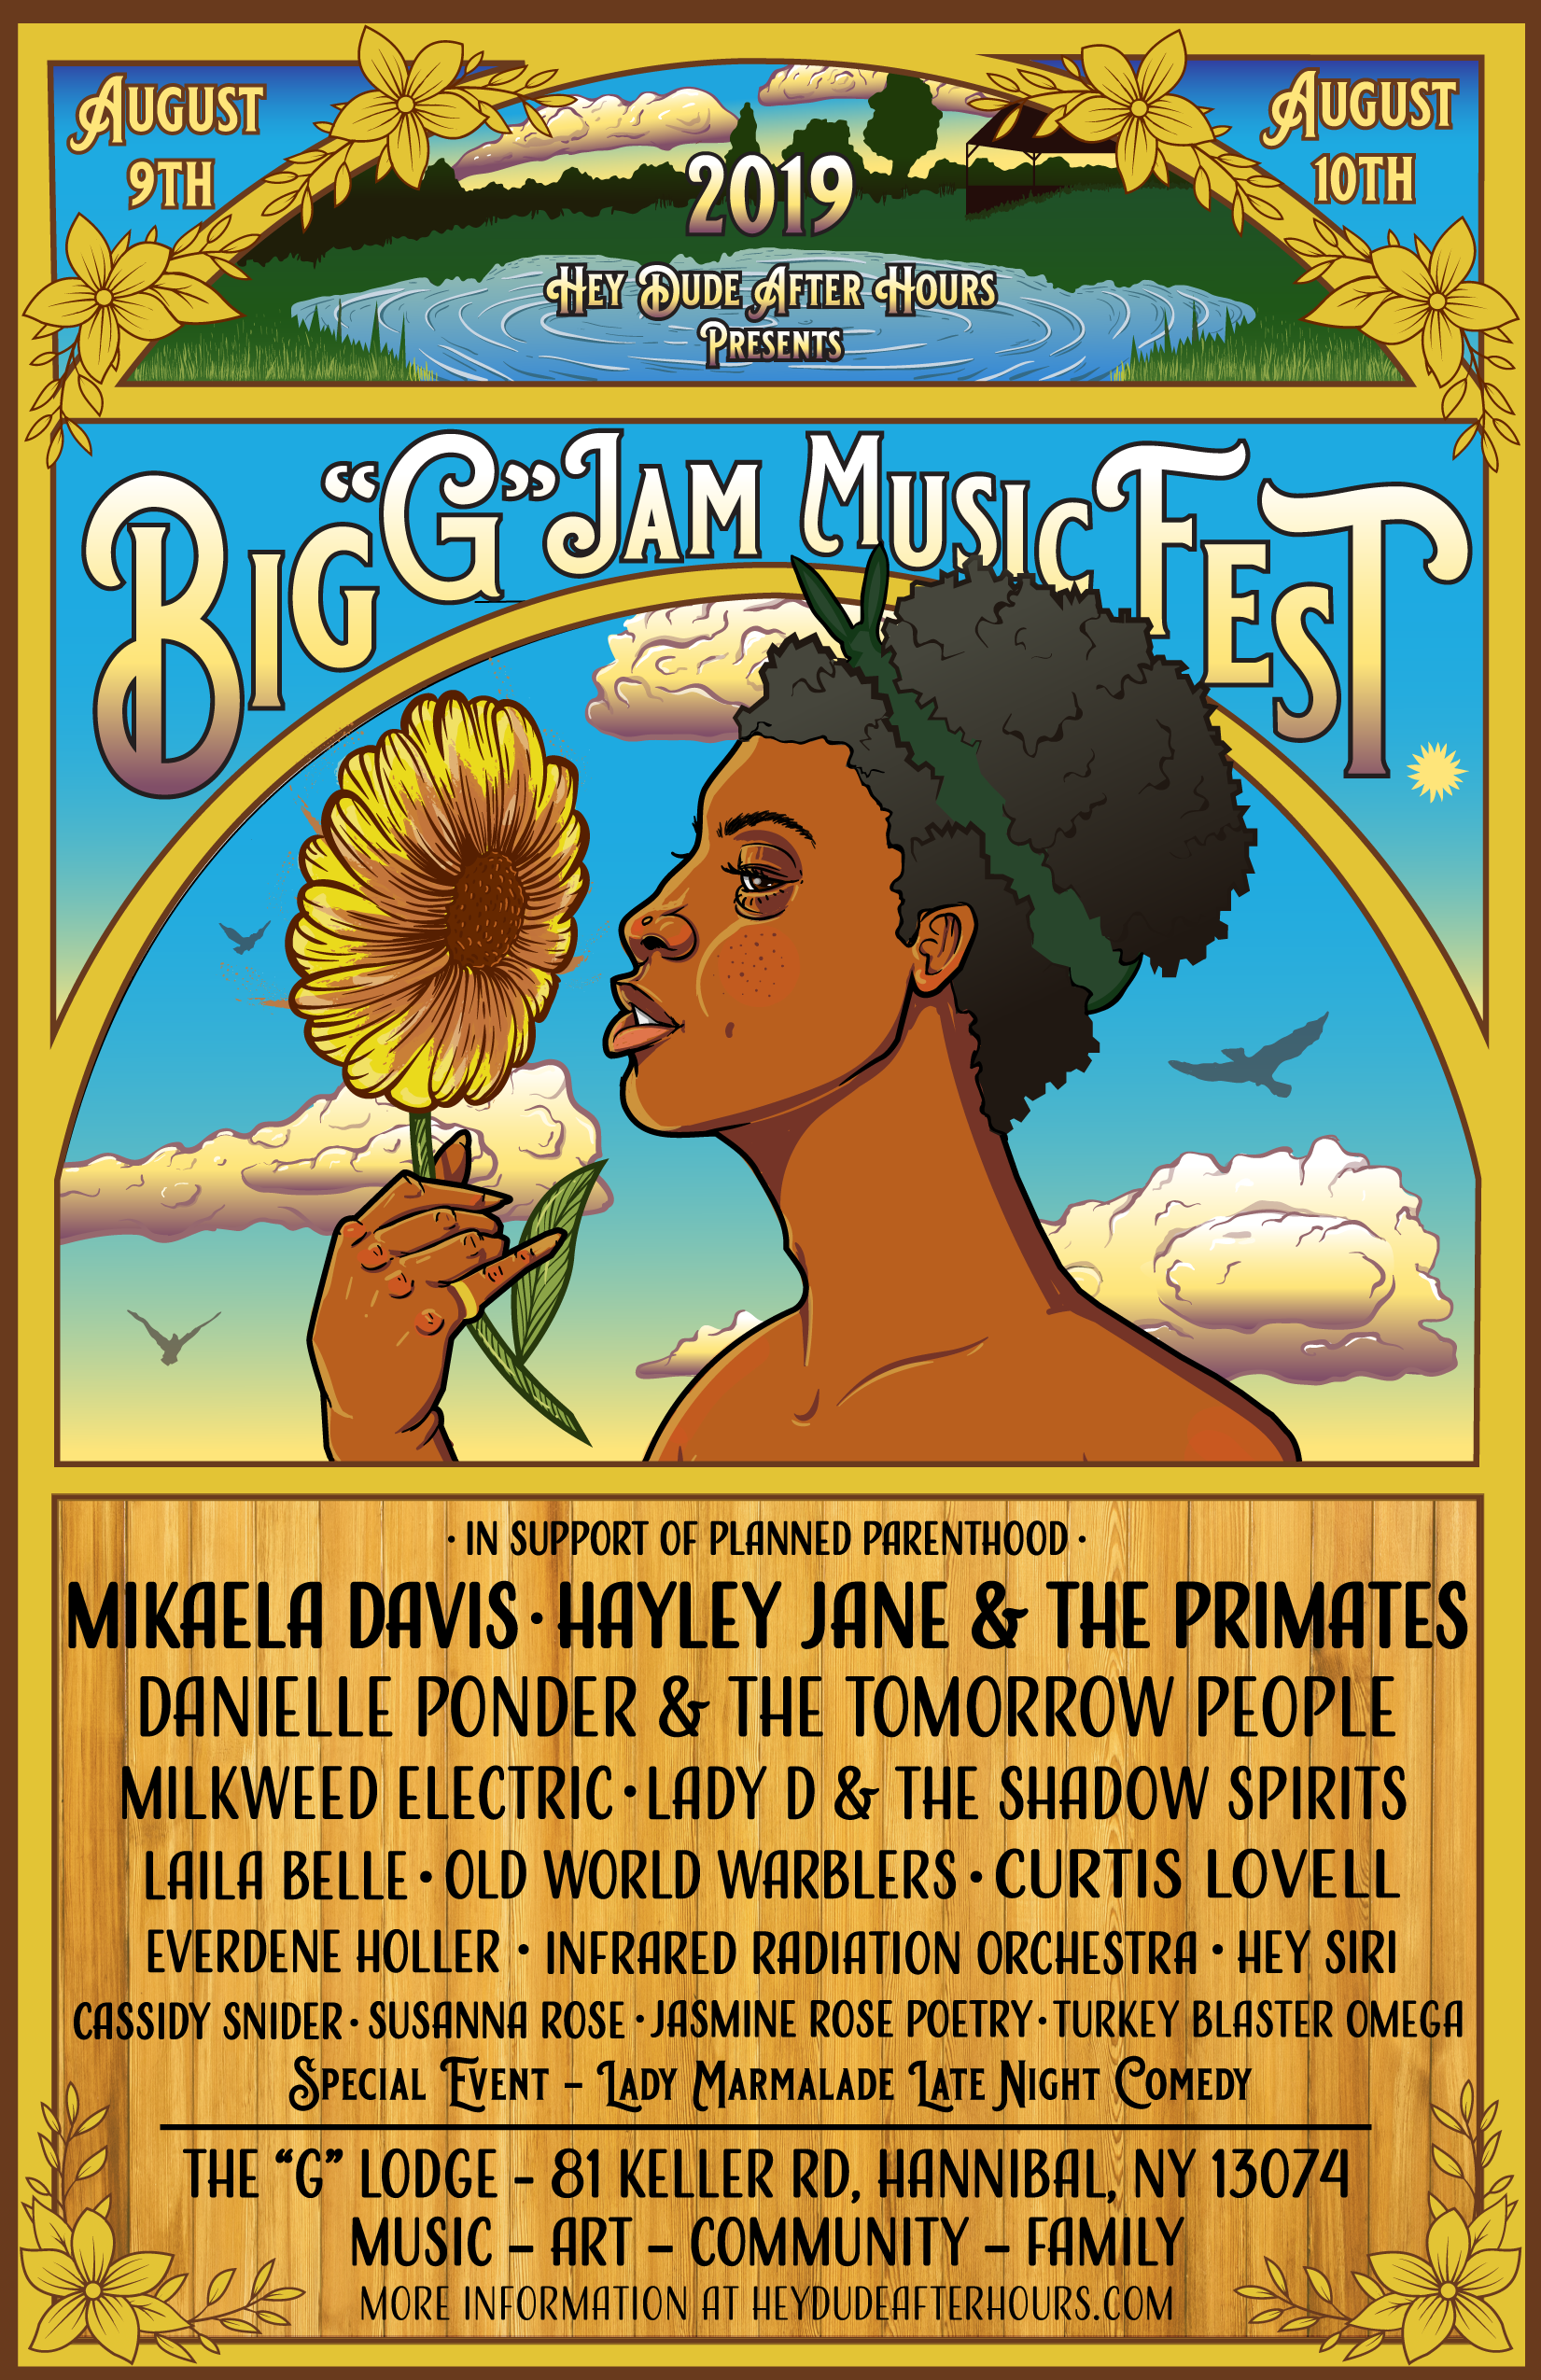 "Big ""G"" Jam - August 9th & 10th, 2019In support of Planned Parenthood of Central & Western New York.Family friendly weekend with live music, art, and workshops. Children under the age of 18 must be accompanied by a parent or guardian.Pets welcome w/ furry friend ticket $20FREE Tent campingLimited RV spaces availableBYOB. NO Glass. NO Fireworks. NO Illegal Substances. NO Underage Drinking"